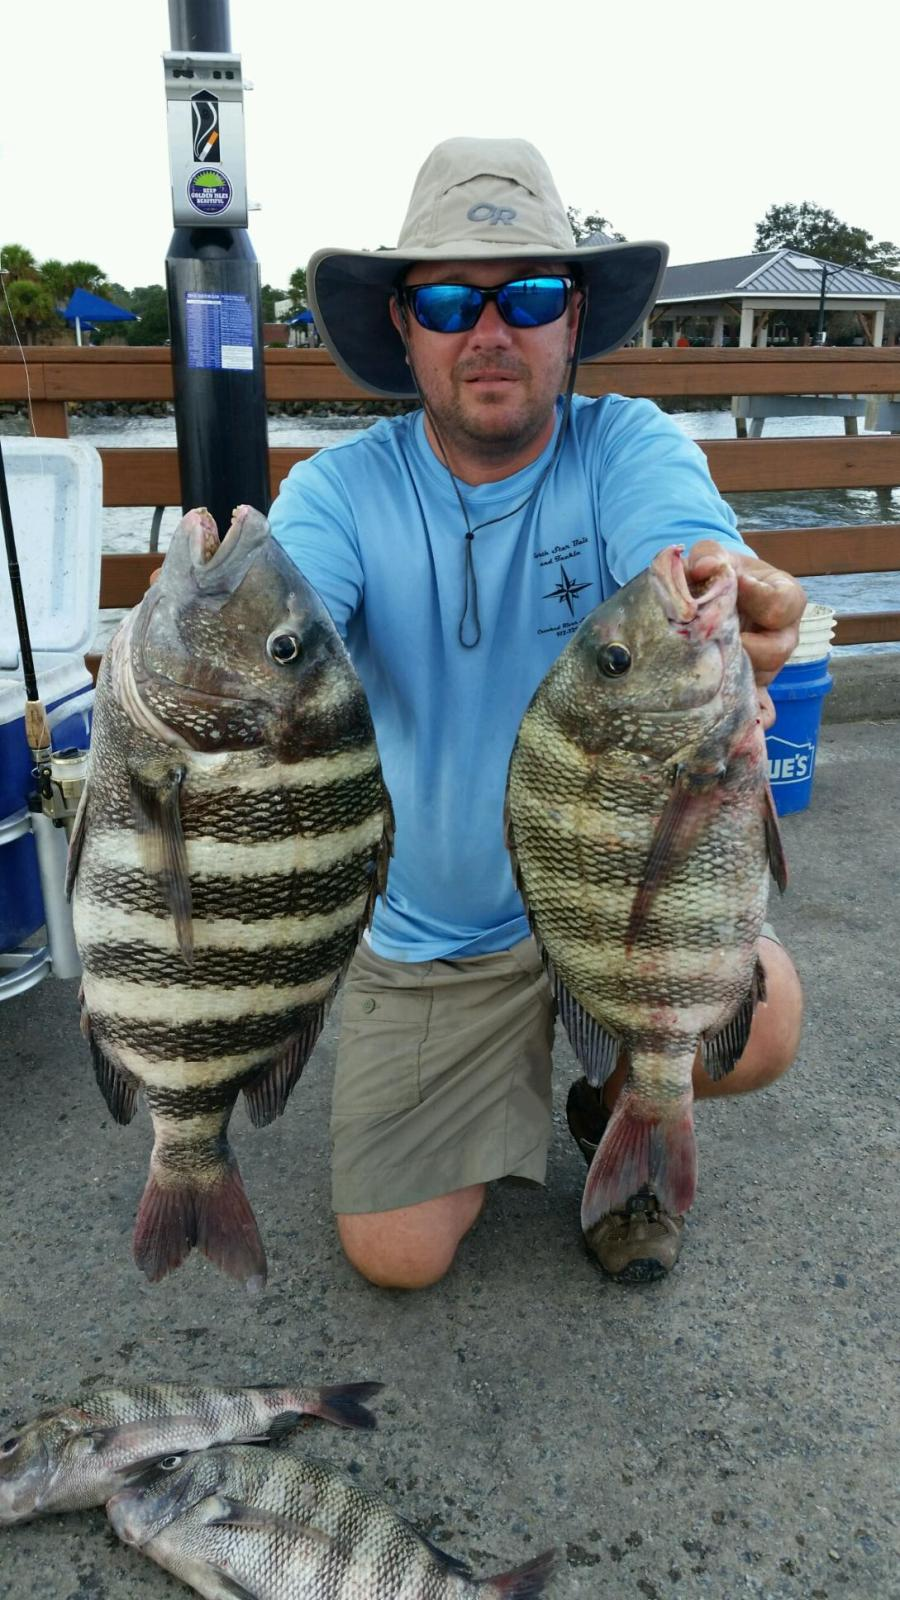 Winter is sheepshead time. Ed Zmarzly of Waycross caught these beauties (the 7-pounder on the left is his personal best!) from the St Simons Pier.